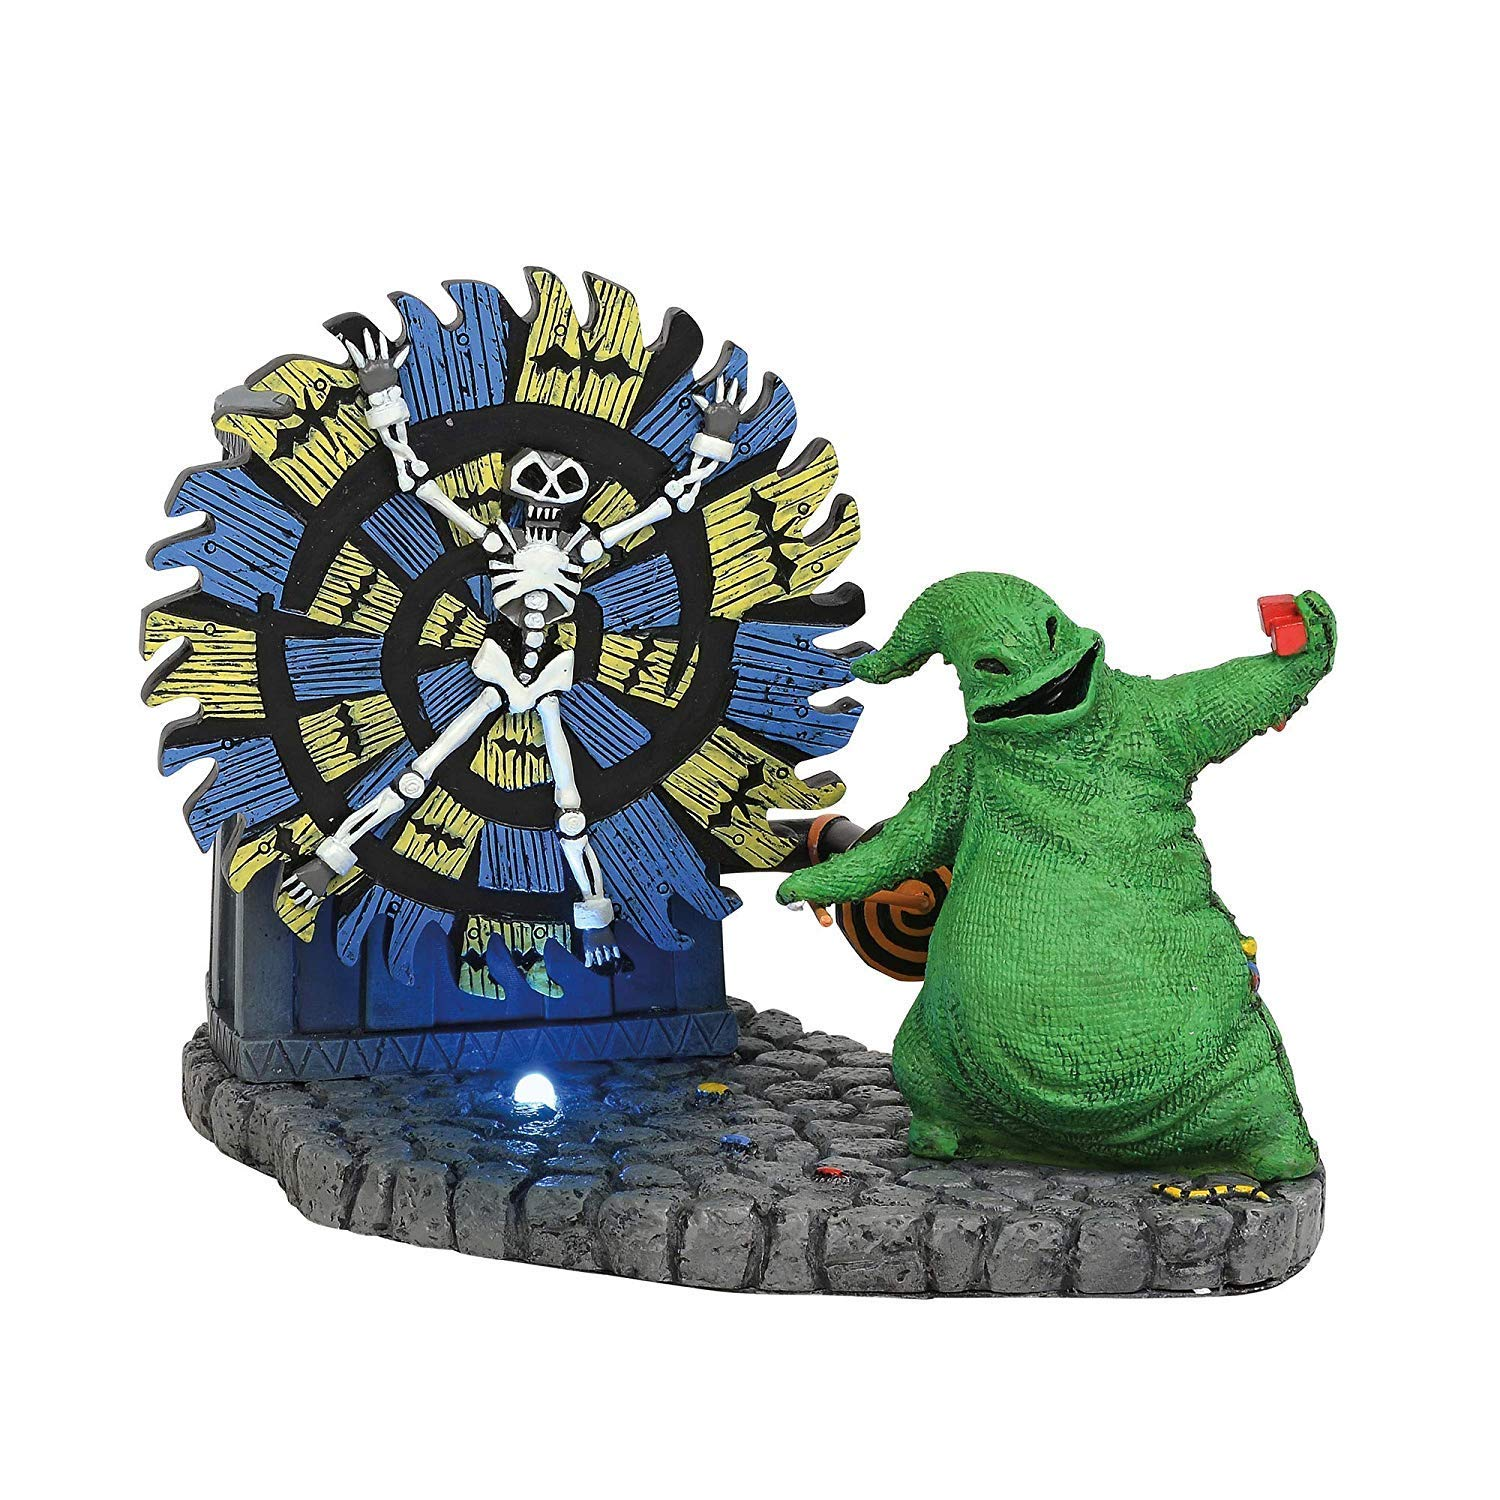 Department 56 Nightmare Before Christmas Village Oogie Boogie Gives a Spin by Department 56